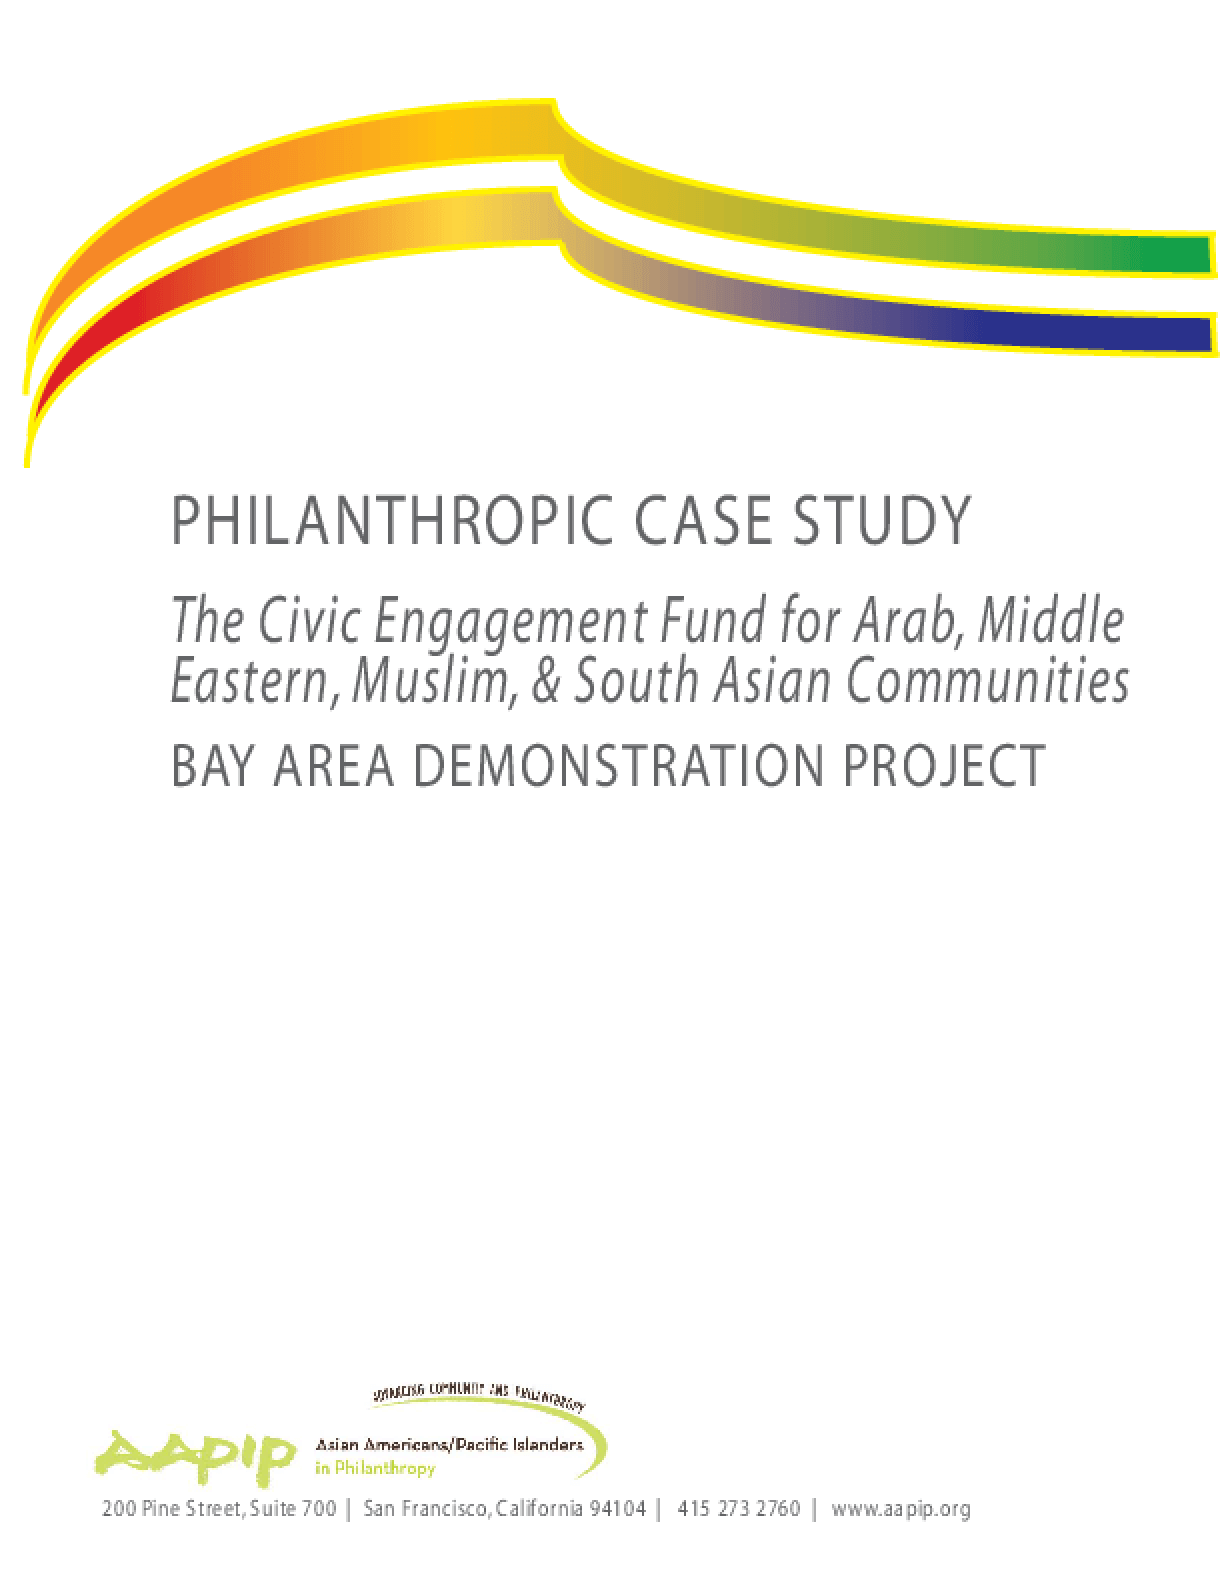 Philanthropic Case Study: The Civic Engagement Fund for Arab, Middle Eastern, Muslim, and South Asian Communities - Bay Area Demonstration Project